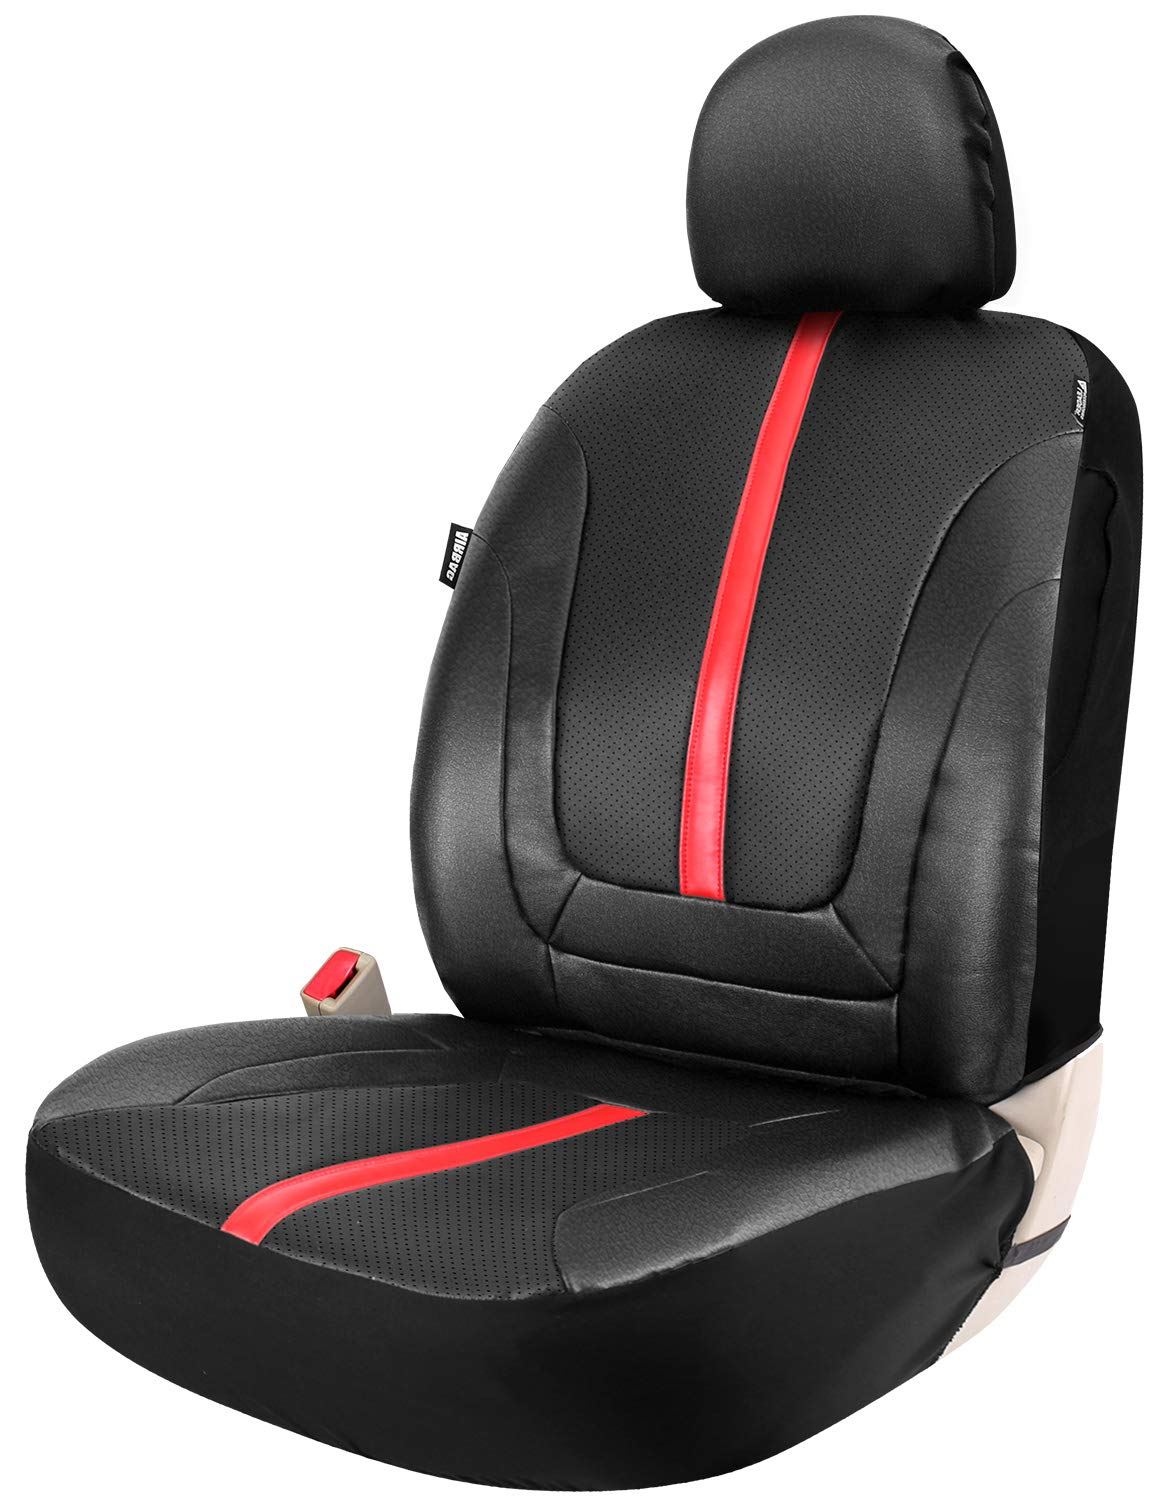 Leader Accessories Platinum Vinyl Universal One Faux Leather Front Seat Cover for Car Trucks SUV with Airbag Black/Grey